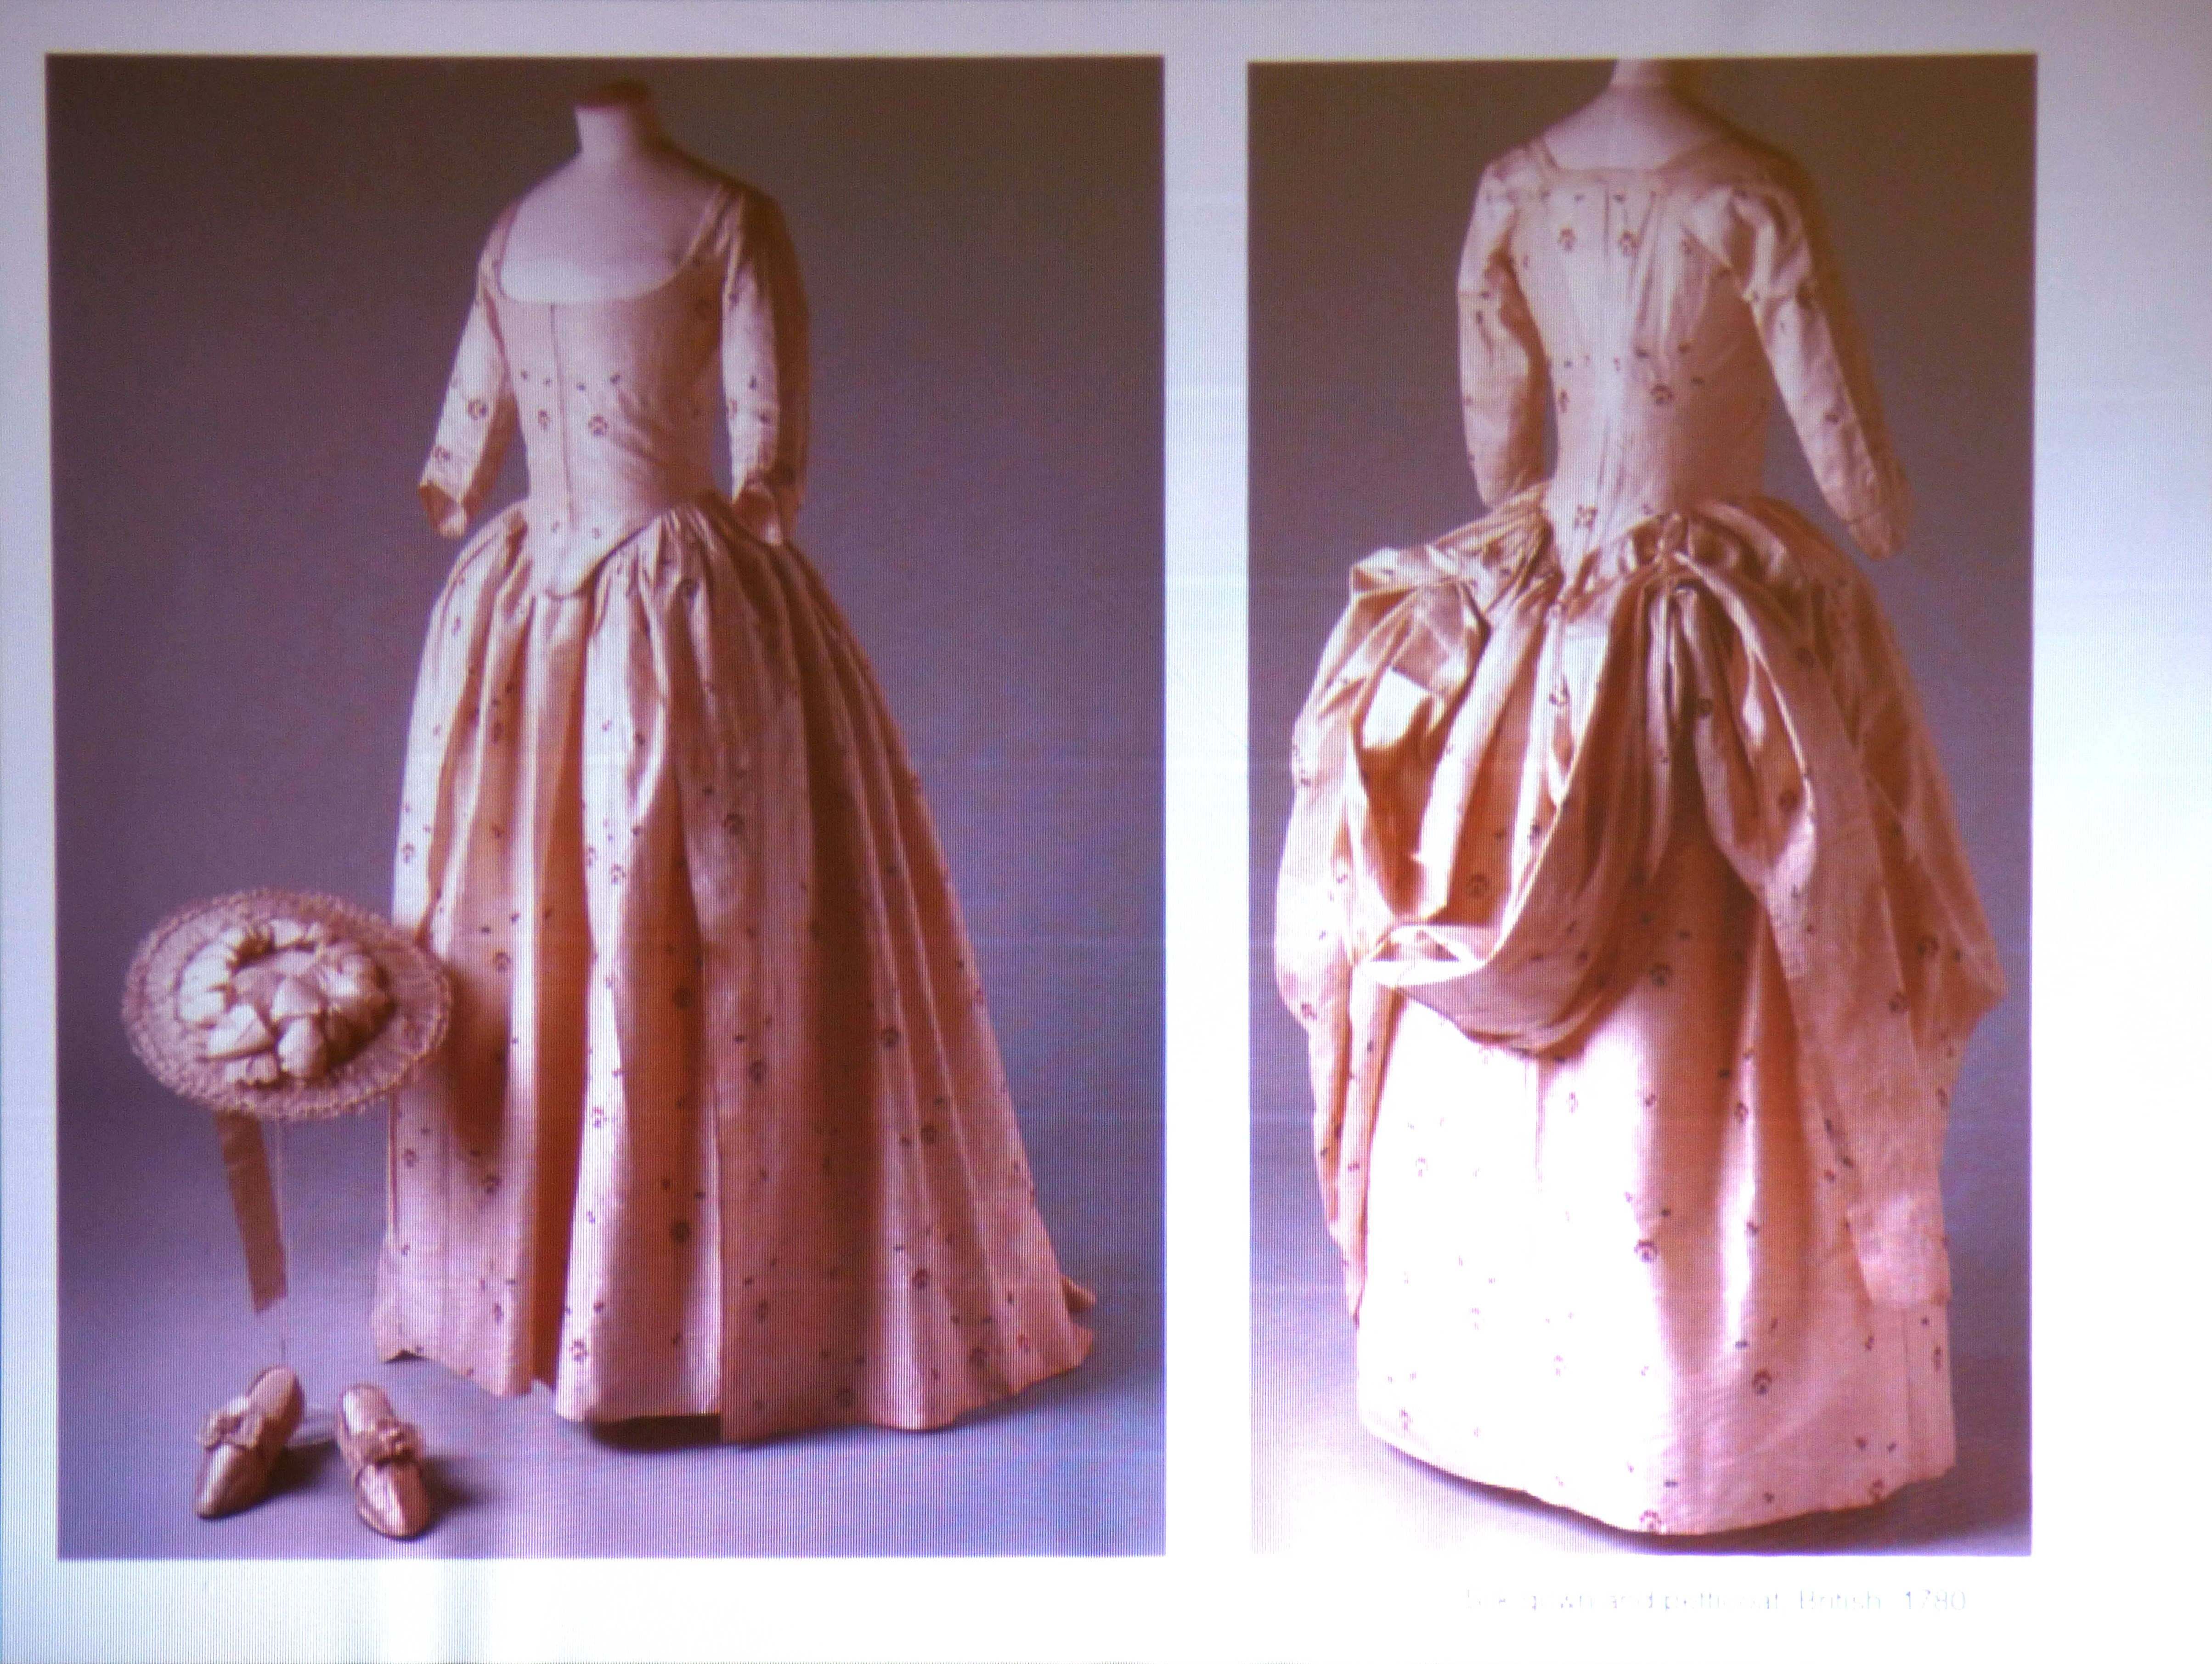 slide showing silk gown and petticoat, British, 1780, History of the Wedding Dress talk by Gill Roberts, MEG 2018